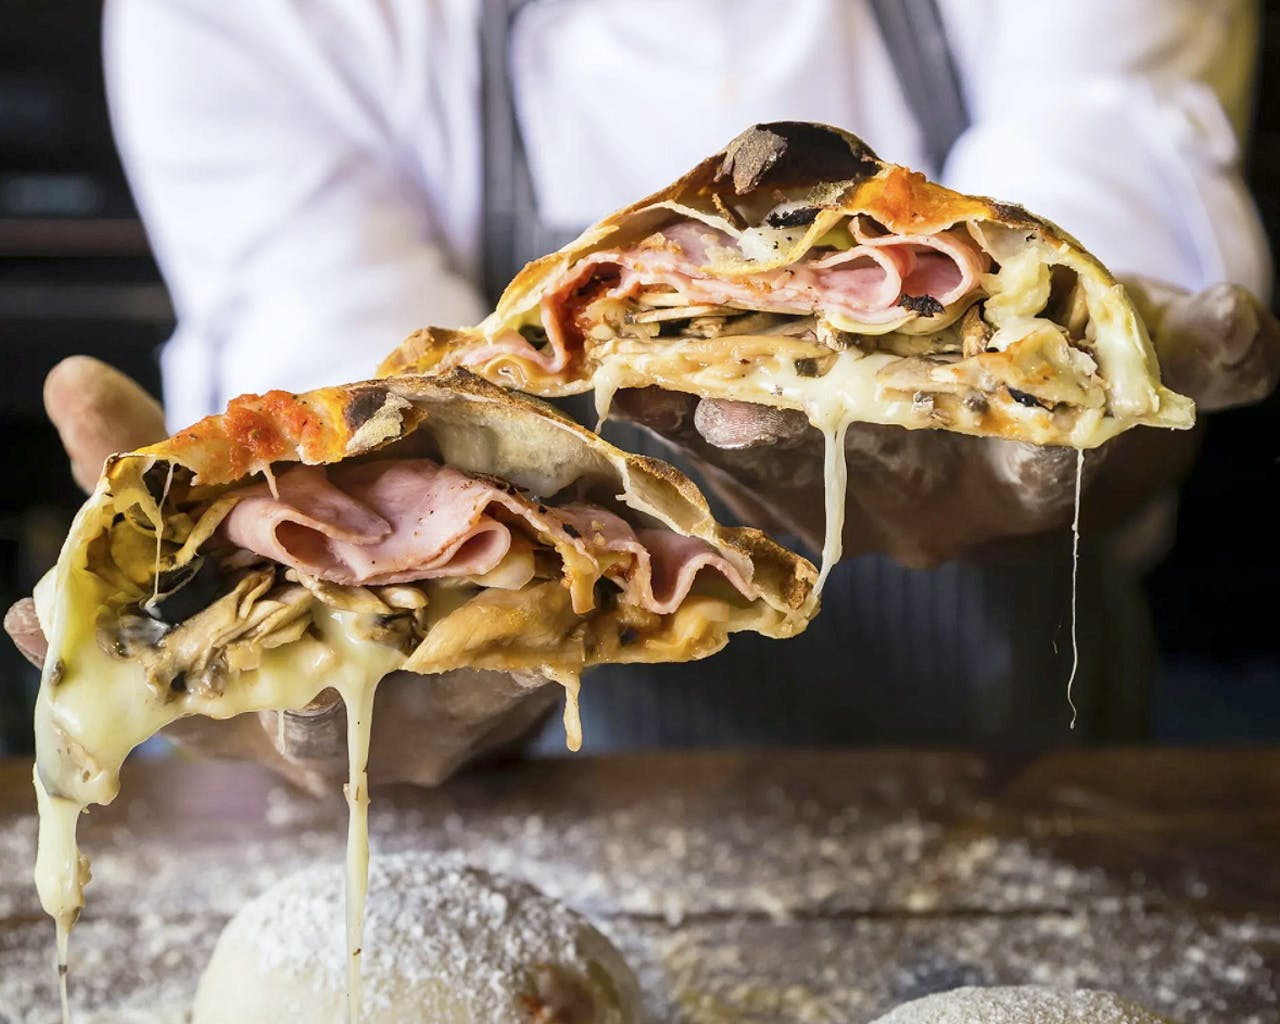 Foie Gras, Wagyu Meatball: Where To Get Unique-flavored Pizza When You're Ready To Try Something New